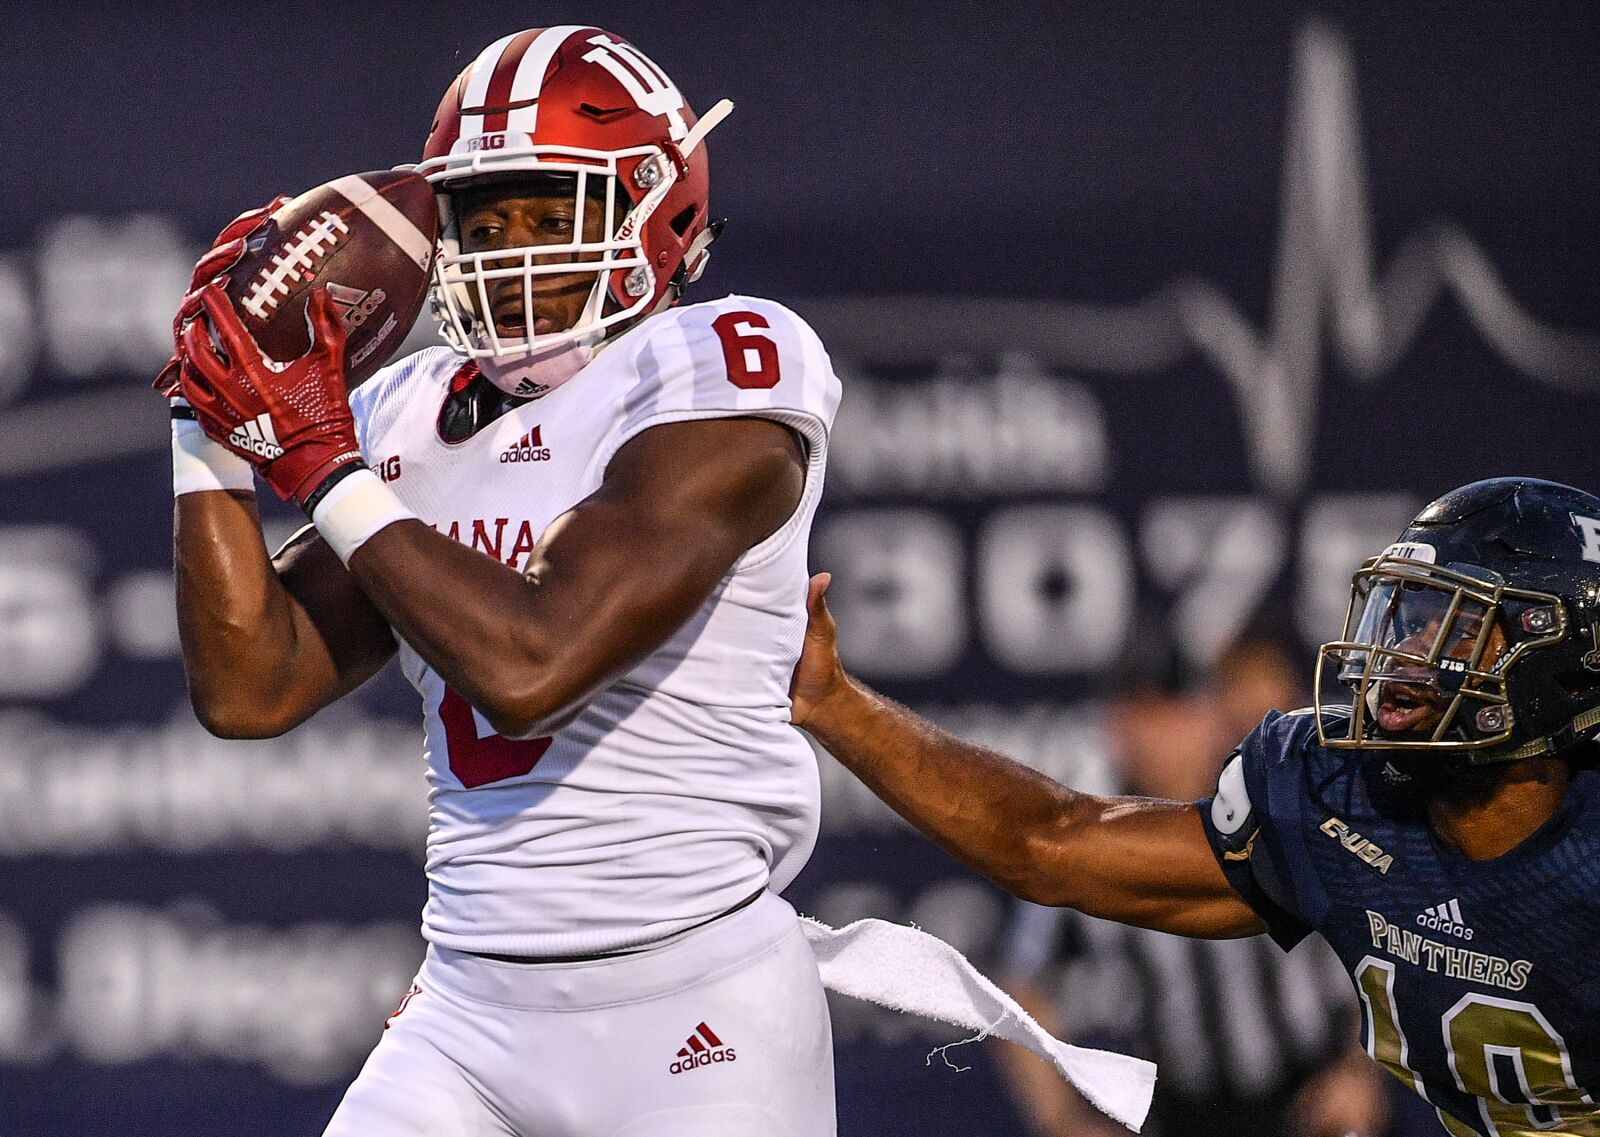 IU Football Looks to Play Spoiler for Michigan Playoff Hopes